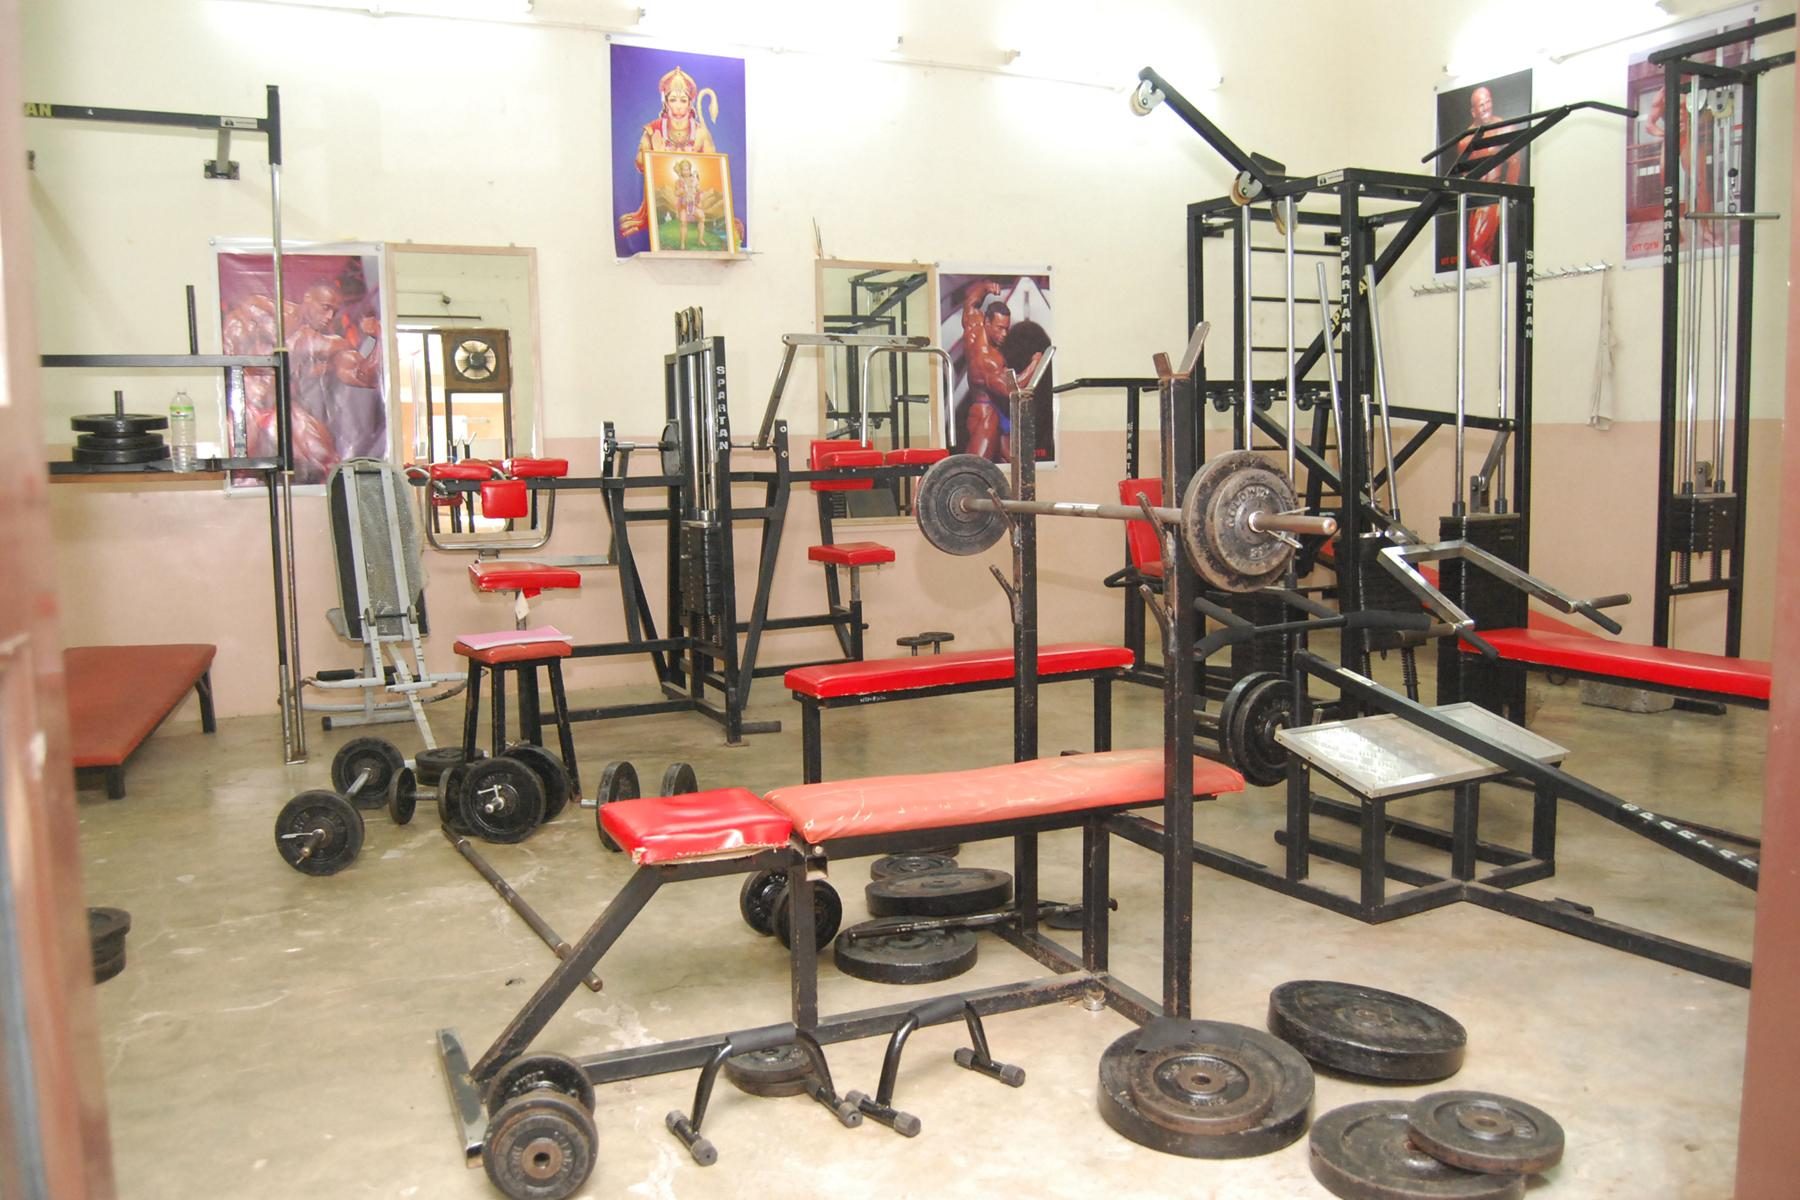 Vishwakarma Institute of Technology Gym